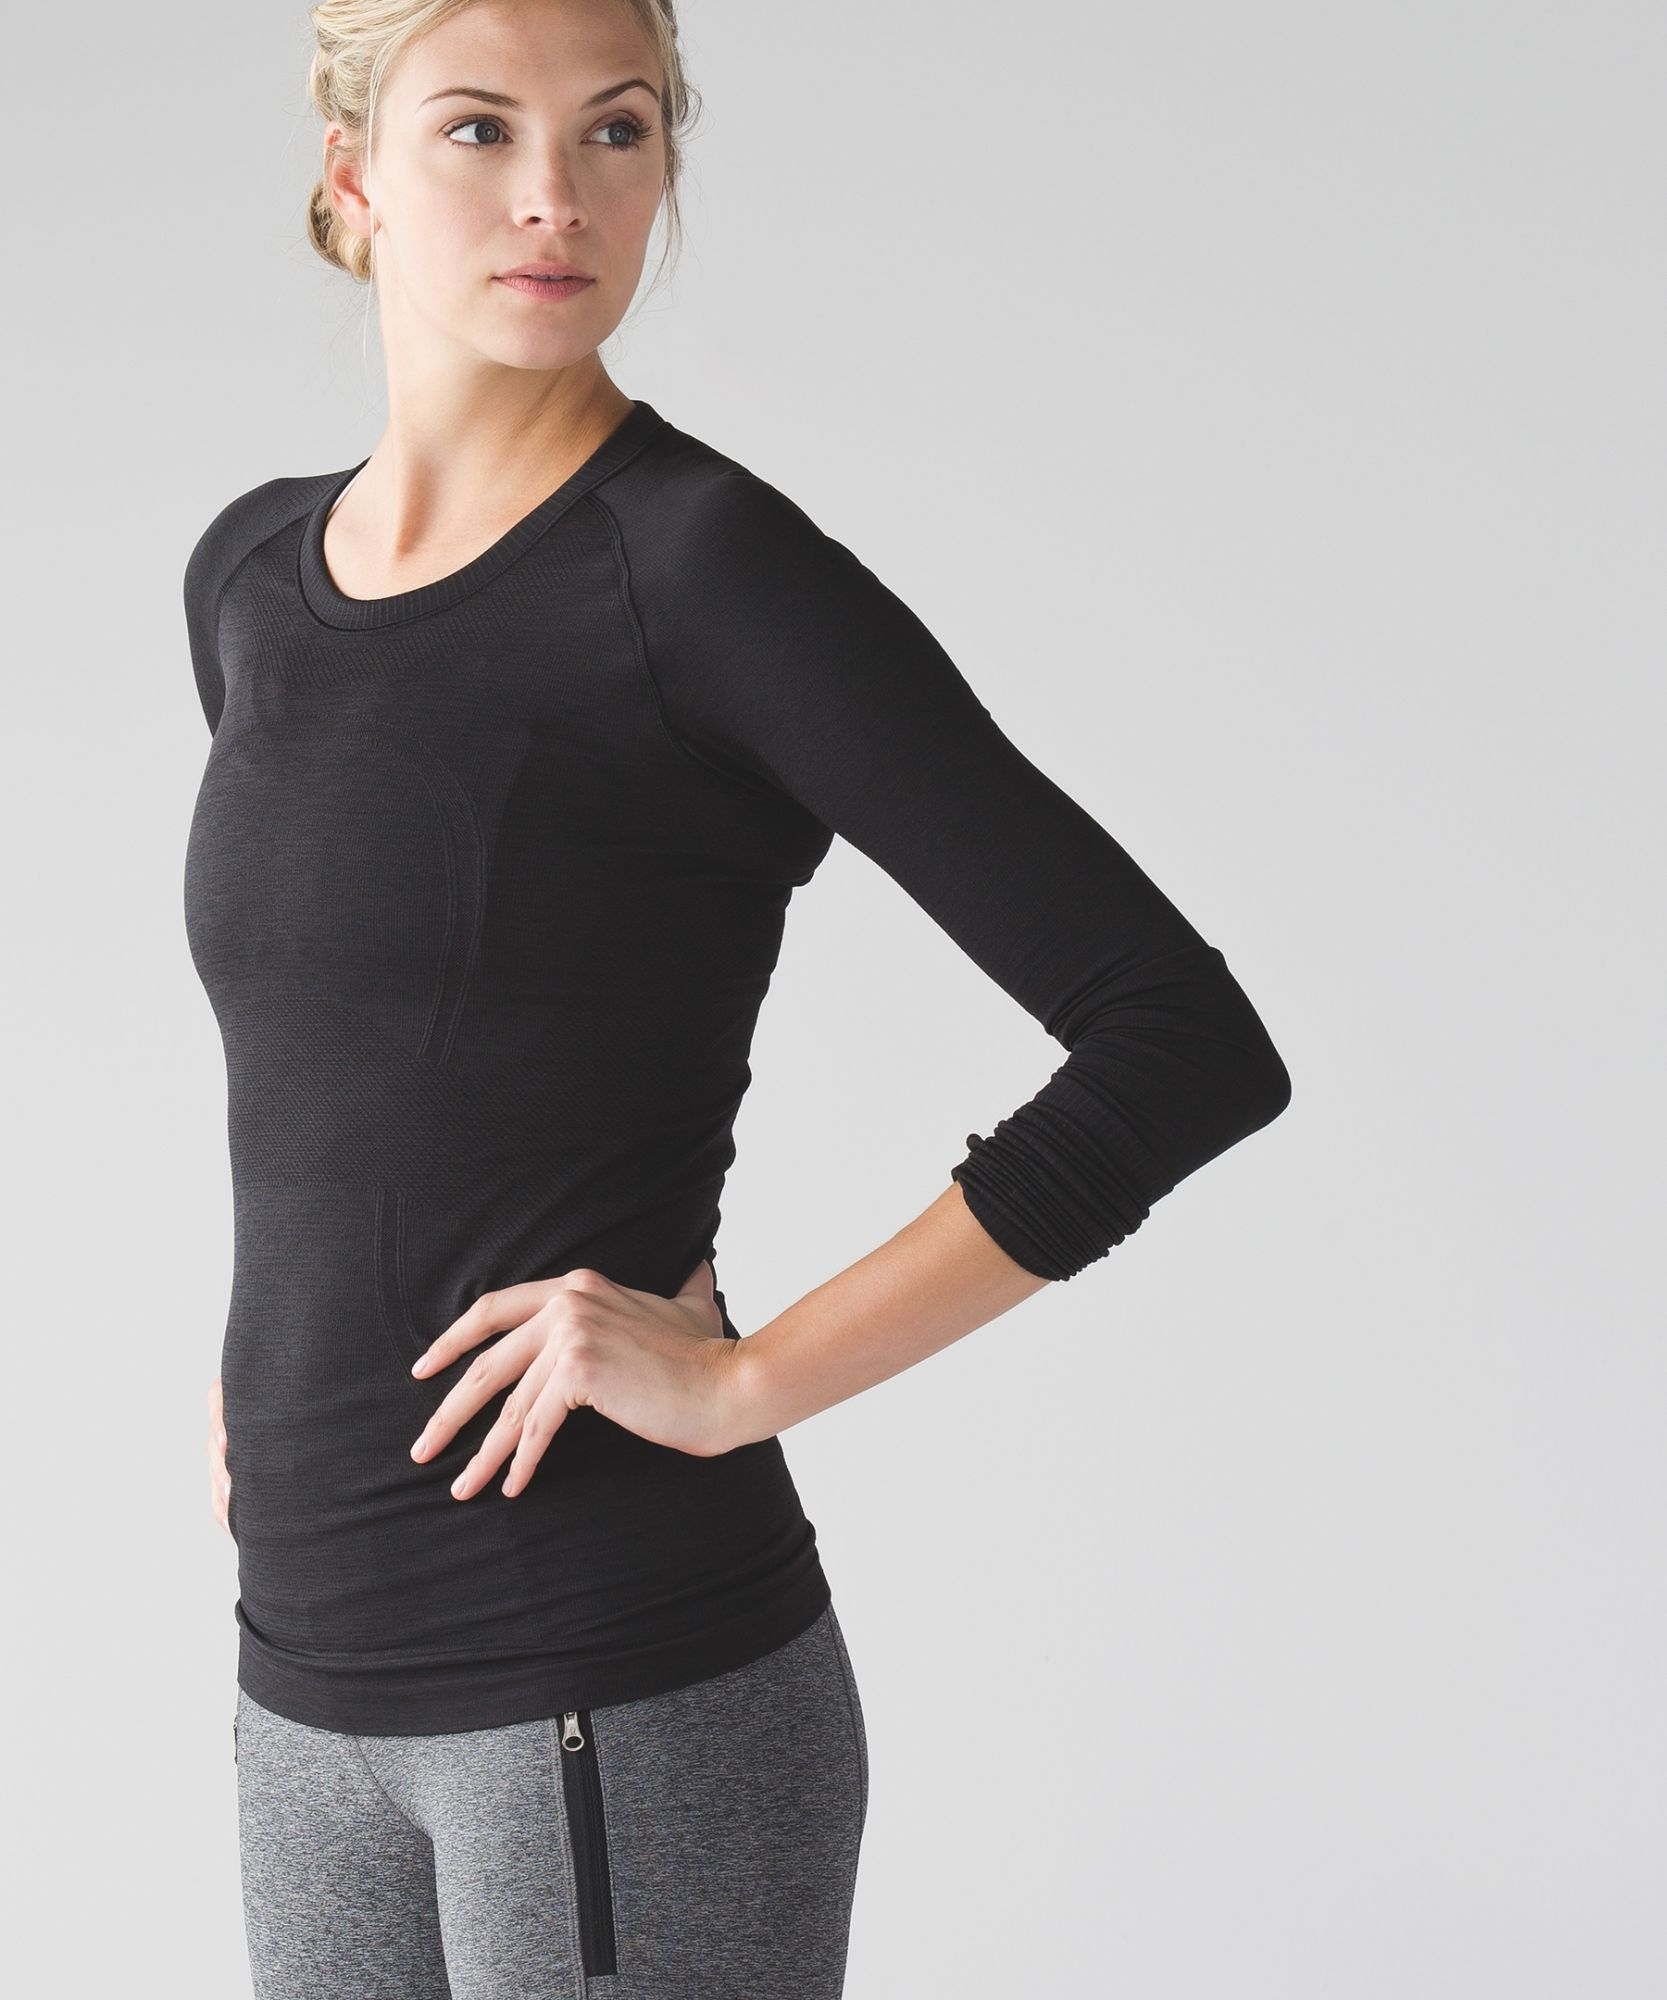 A longsleeve layer designed with running and sweating in mind